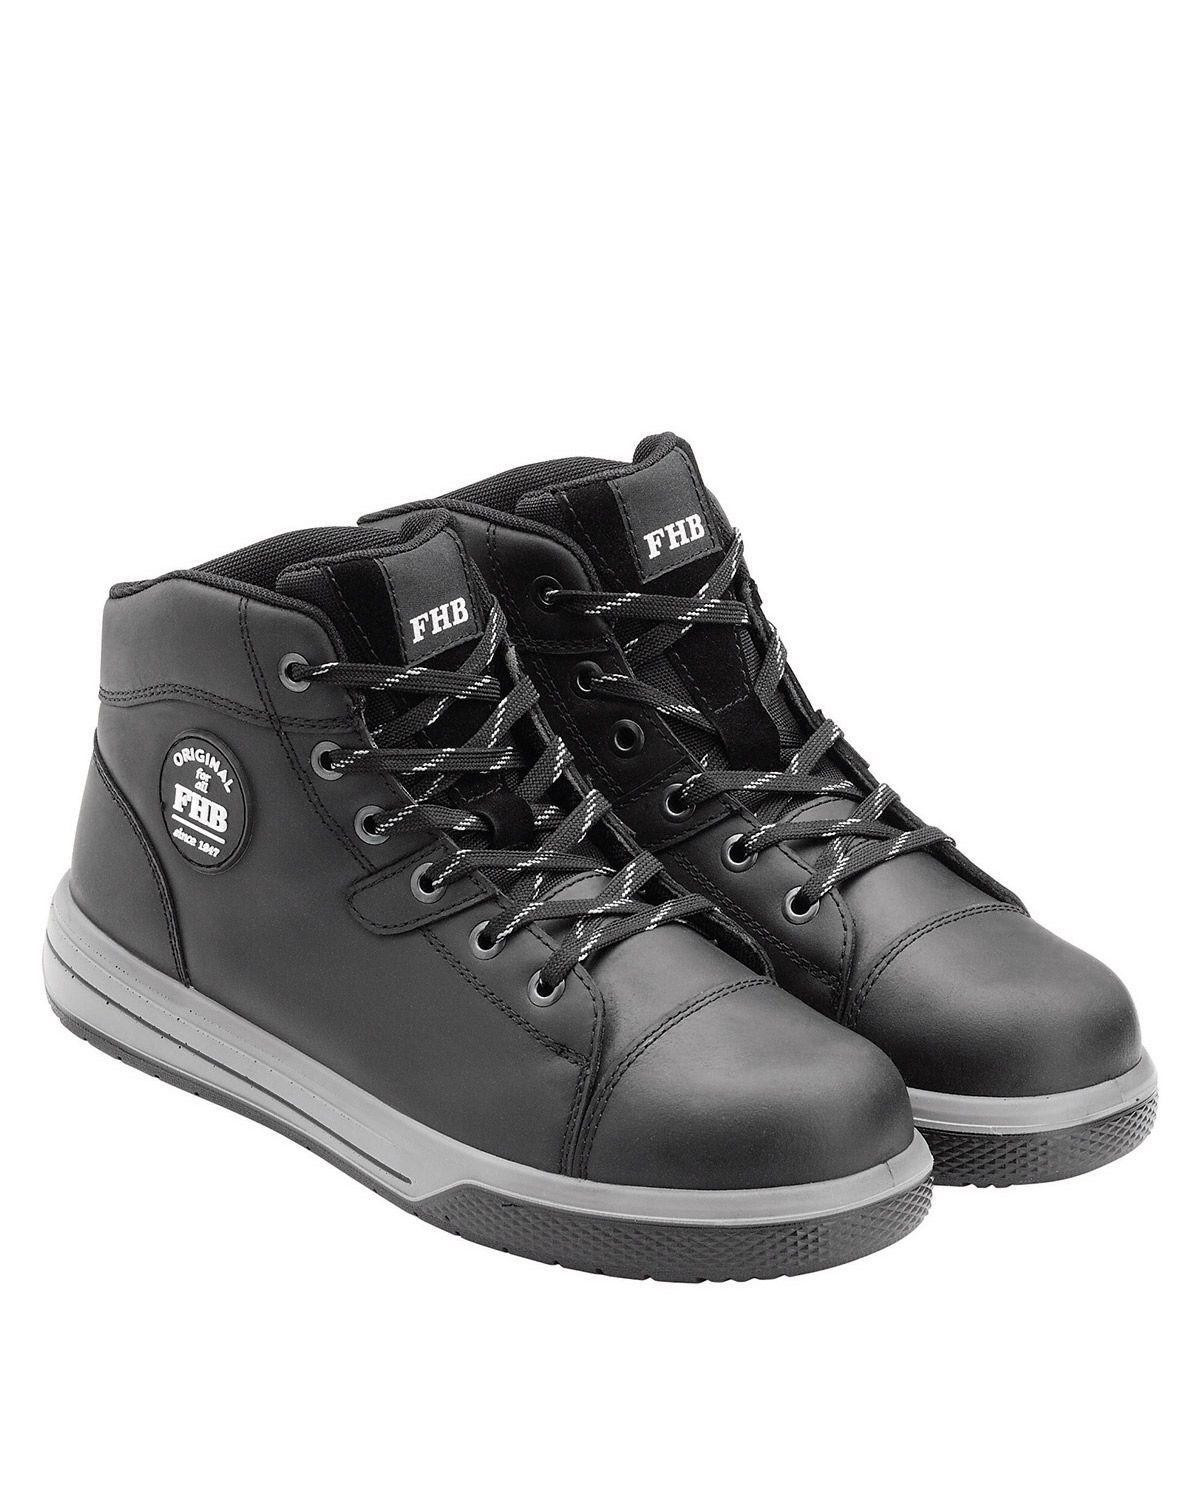 Image of   FHB High Top Sikkerhedssko - Linus (Sort, 42 EU / 8 UK)